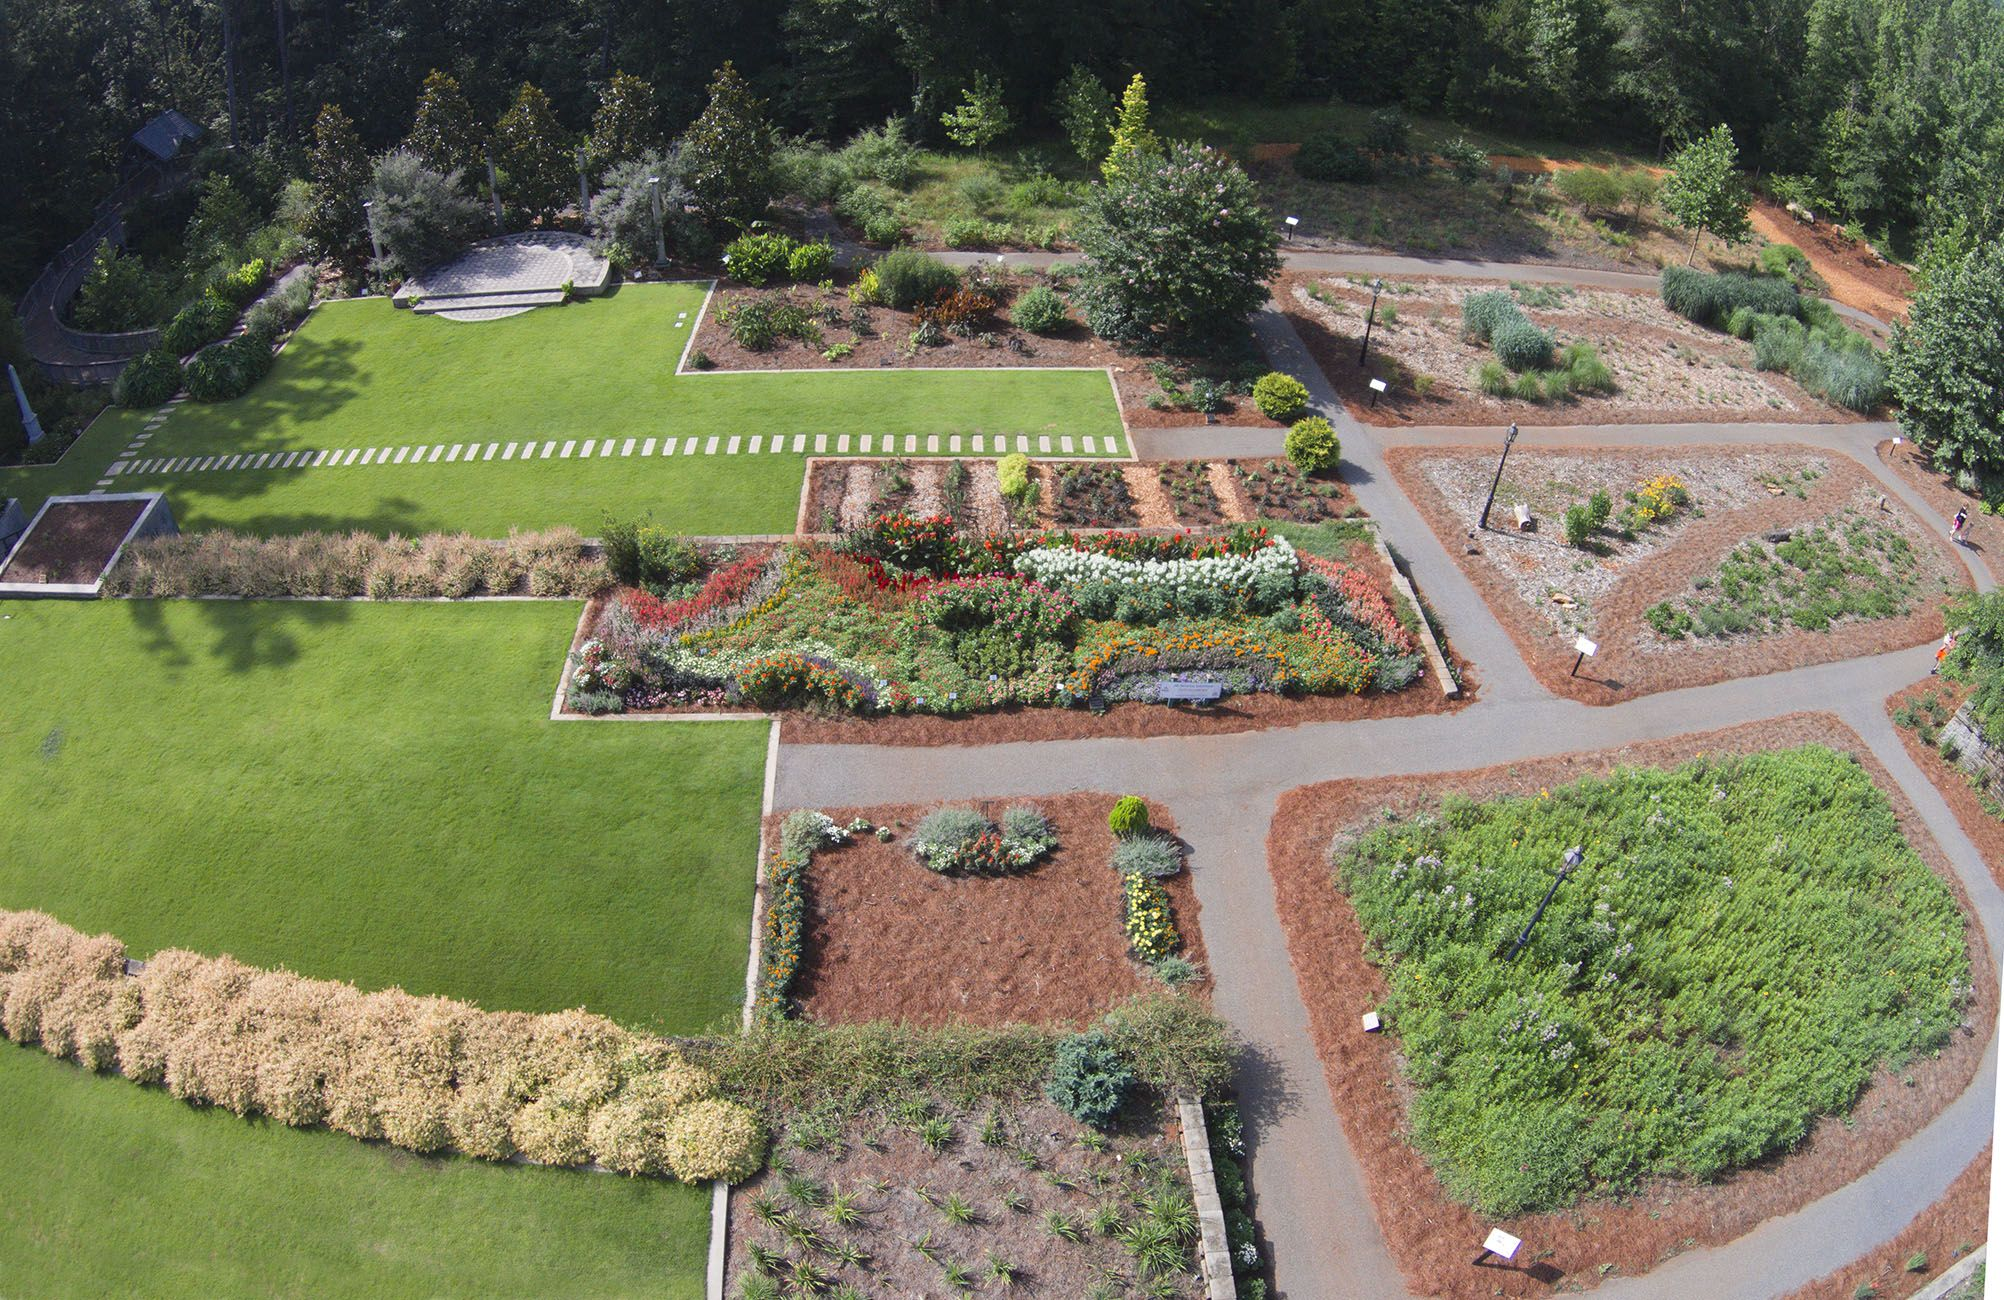 AAS Display Gardens Aerial view of State Botanical Garden of